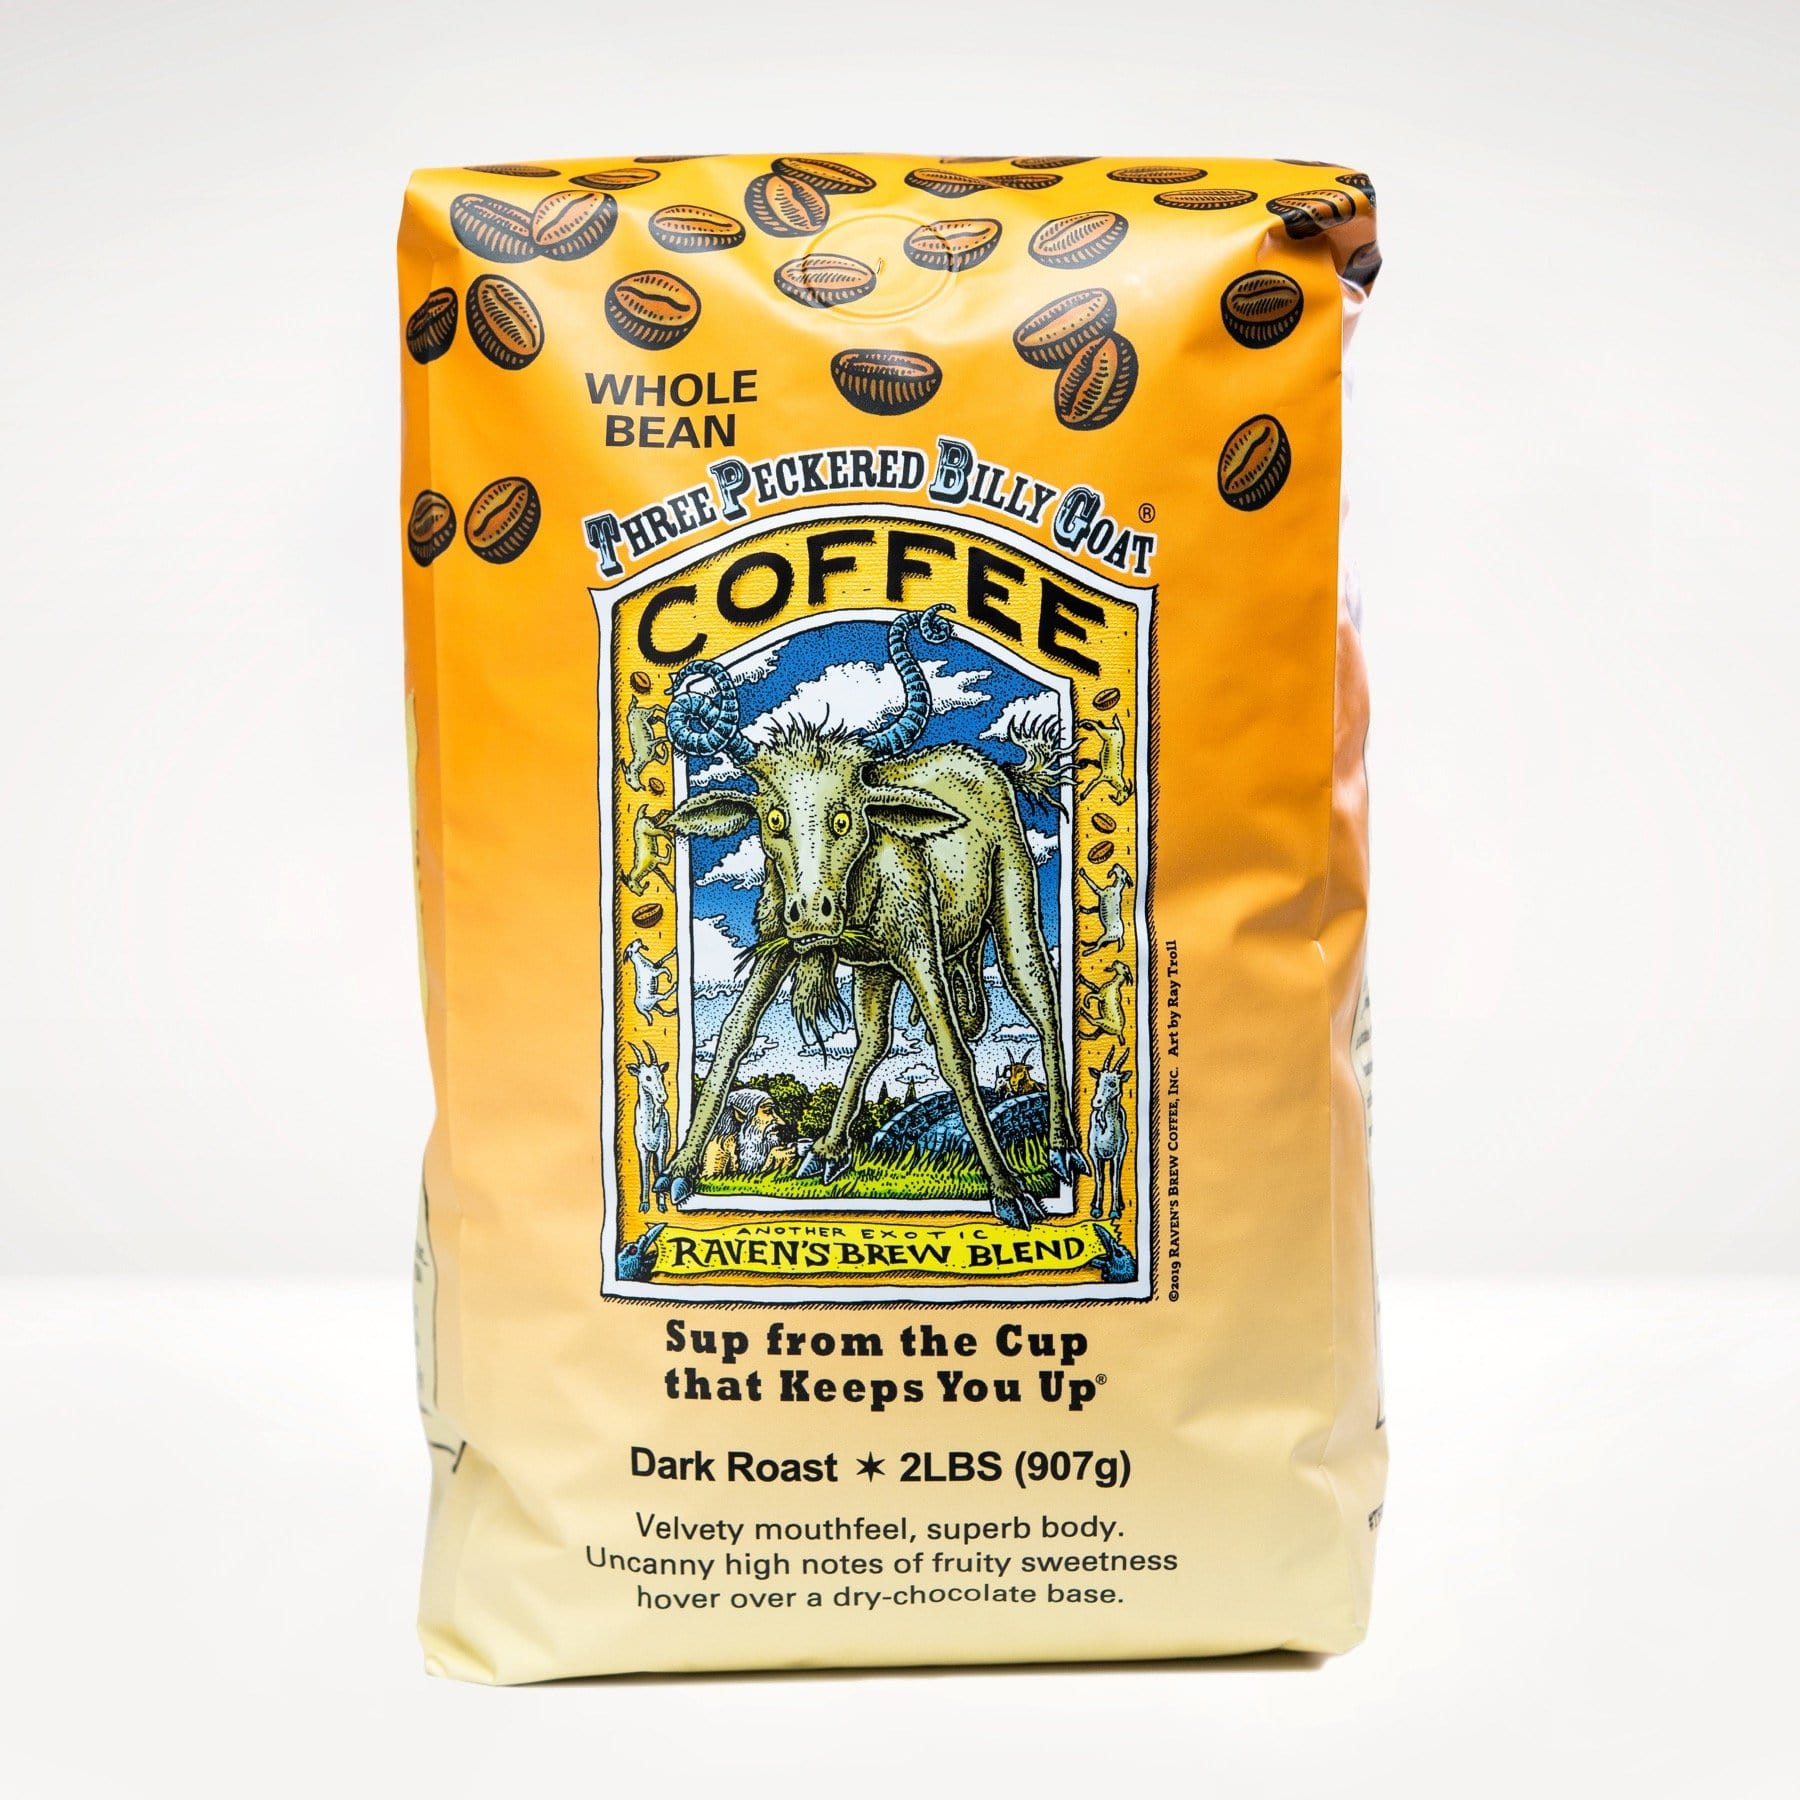 2lb Three Peckered Billy Goat® Coffee